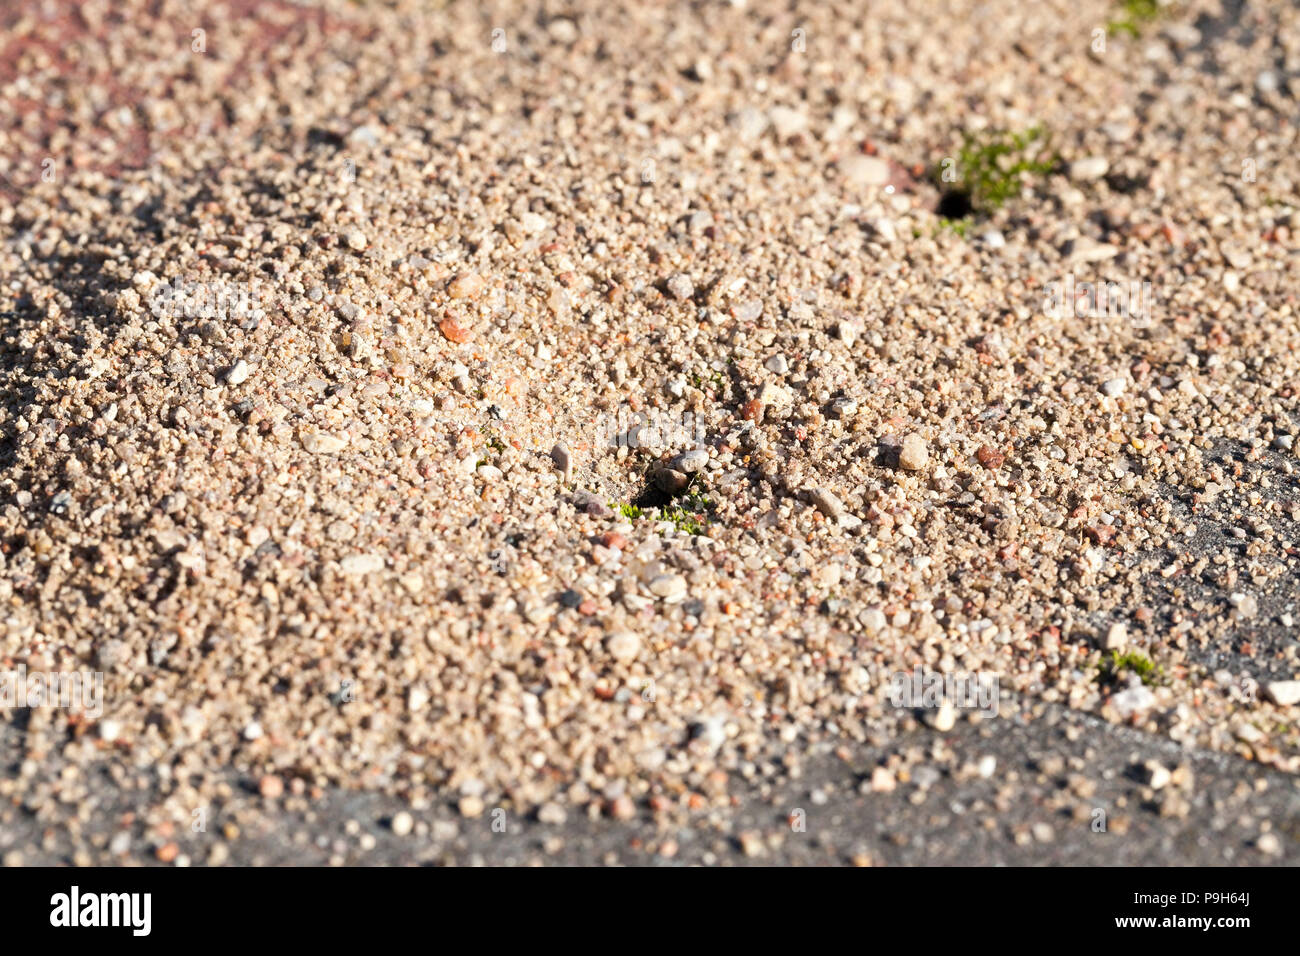 A small anthill with scattered grains of sand near his entrance  an